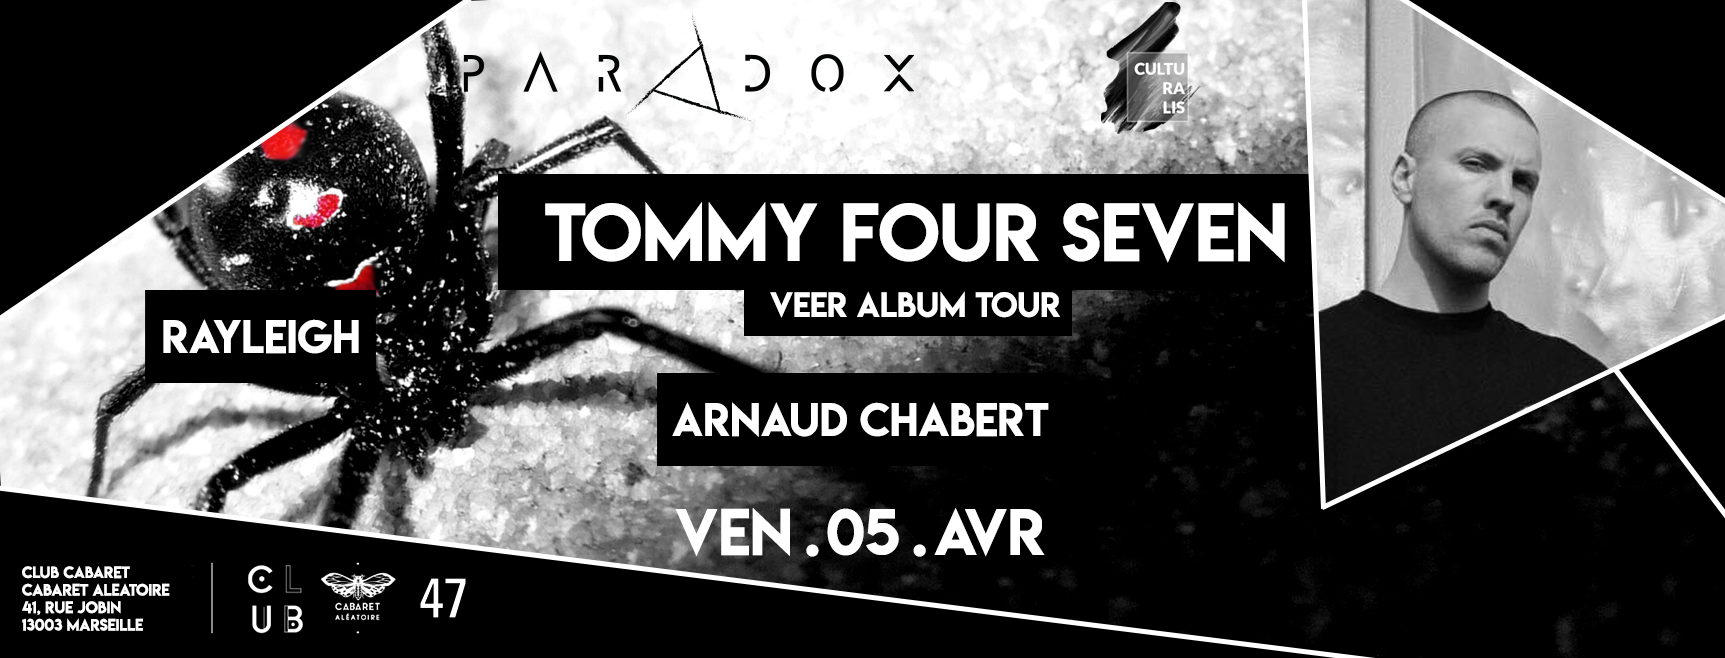 Club Cabaret x Paradox + Culturalis : Tommy four seven + Rayleigh + Arnaud Chabert